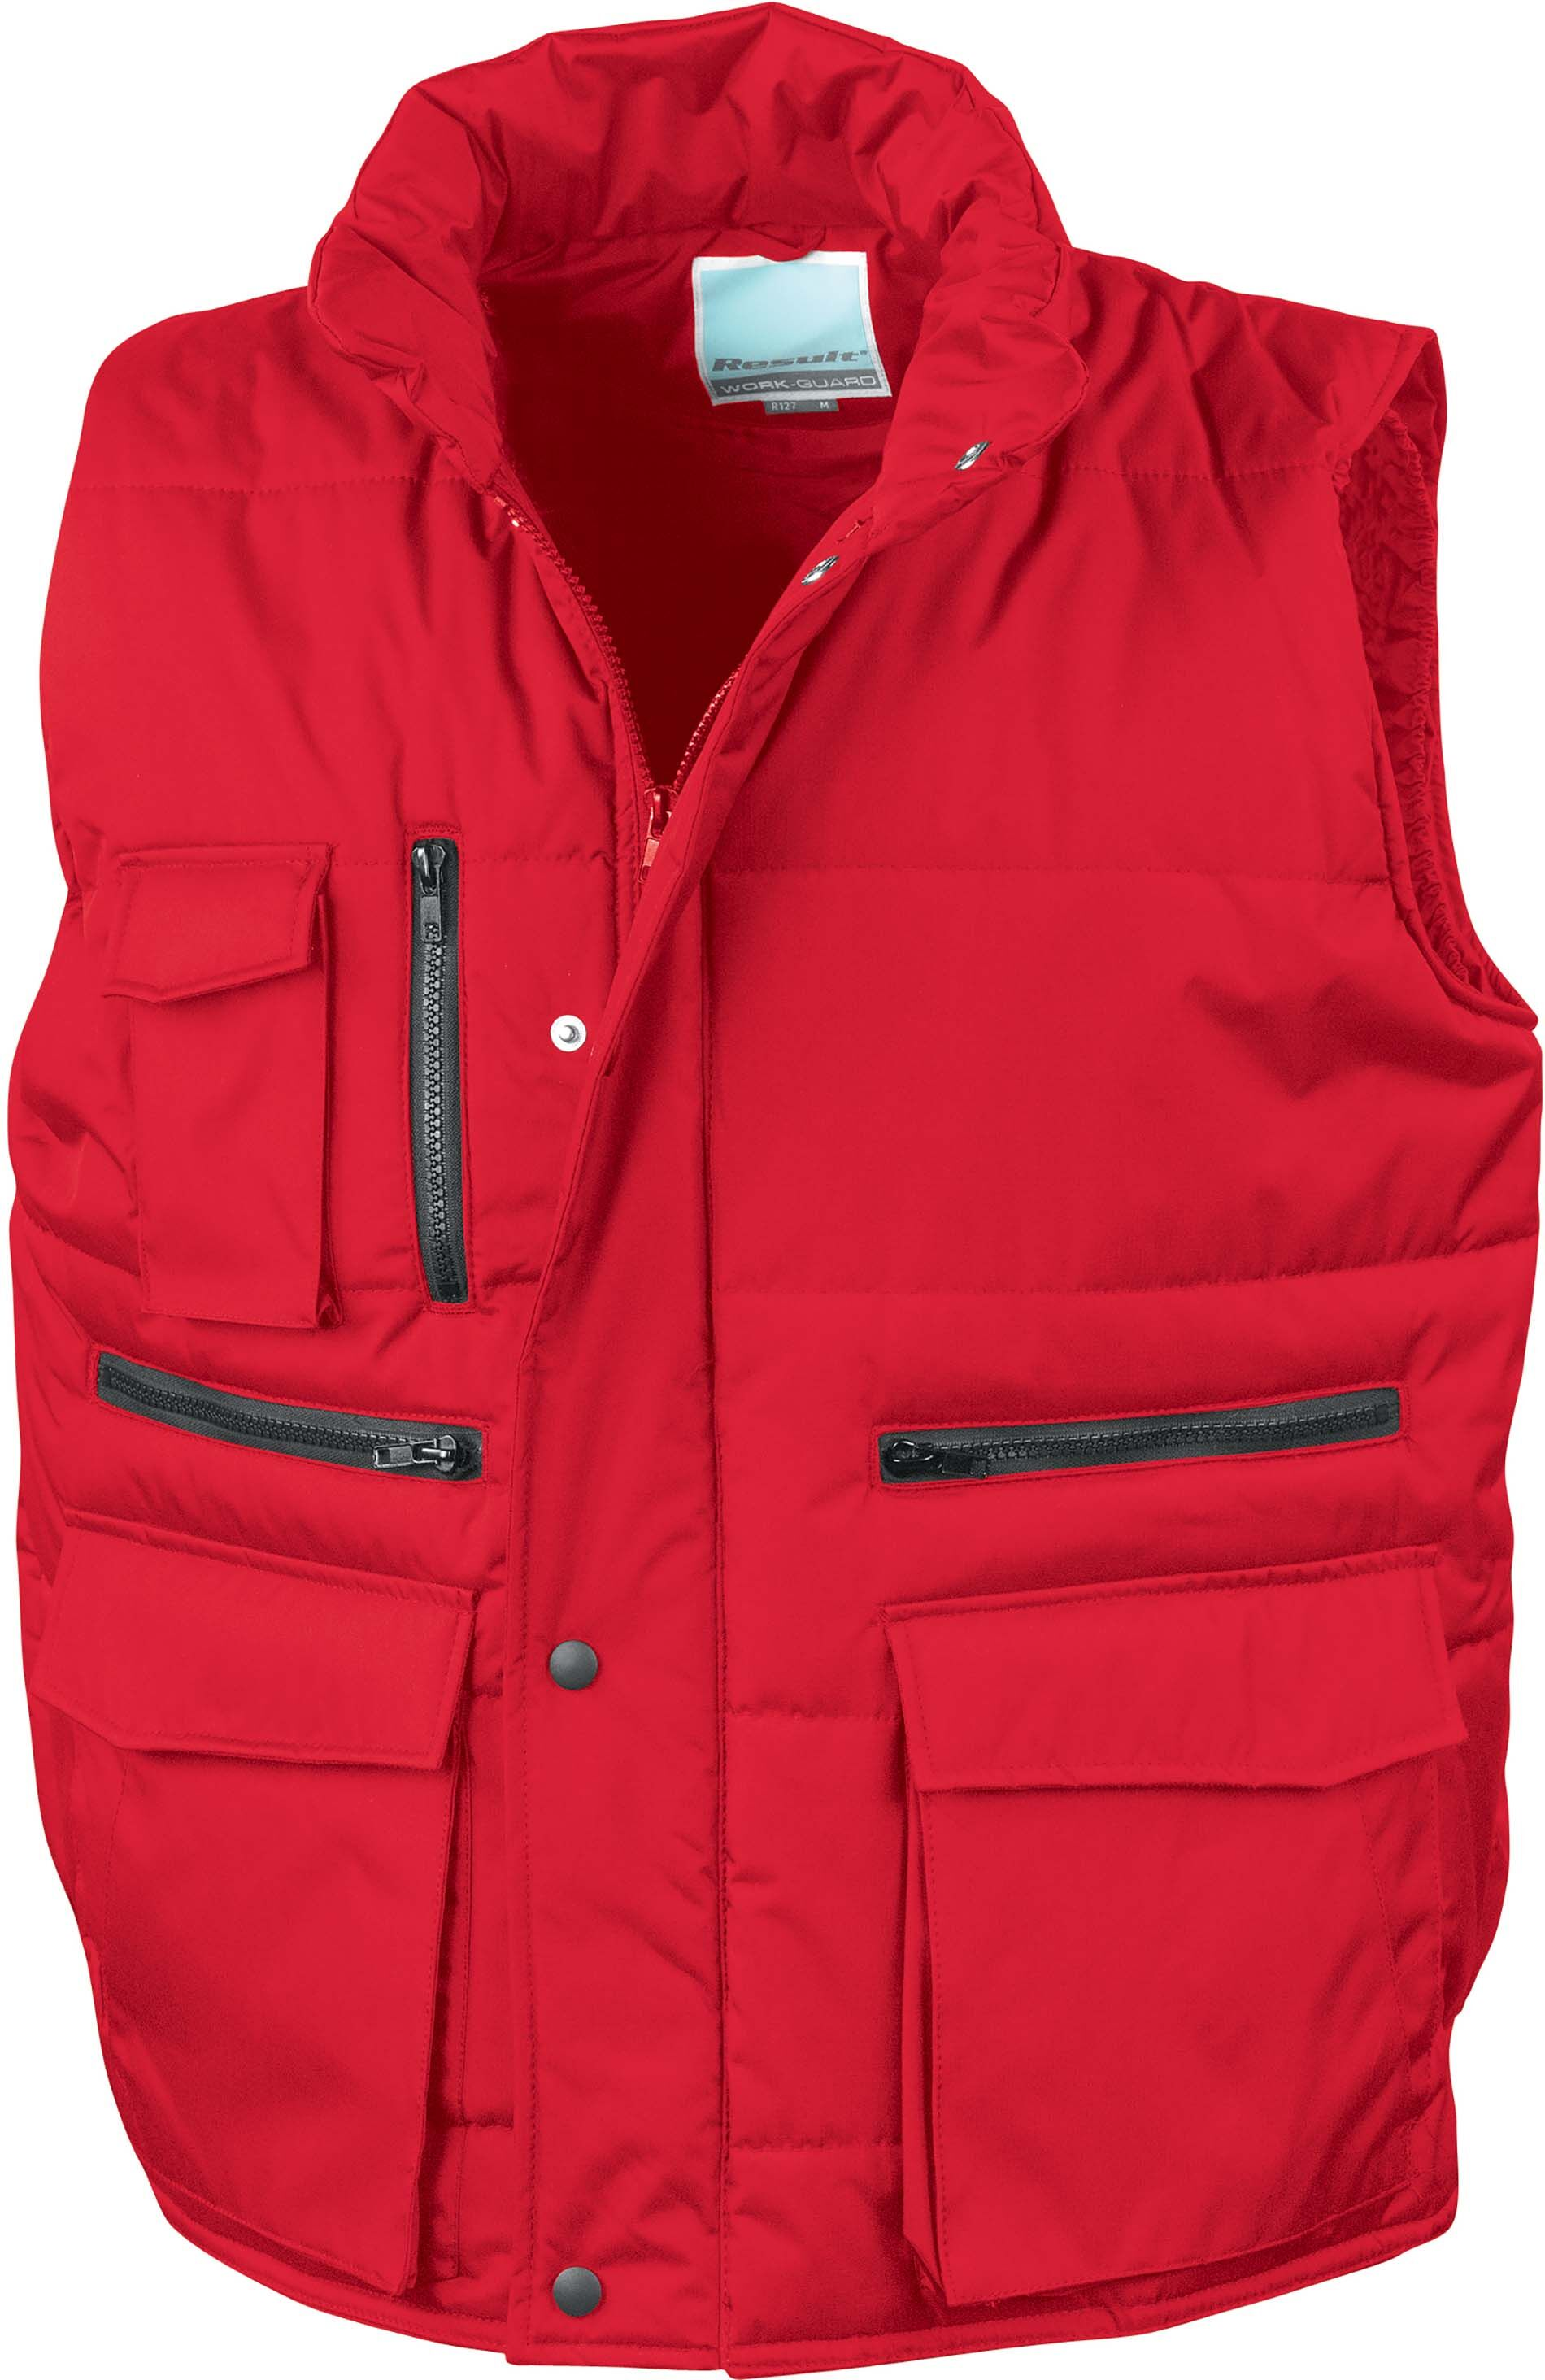 Gilet sans manche multipoches Red